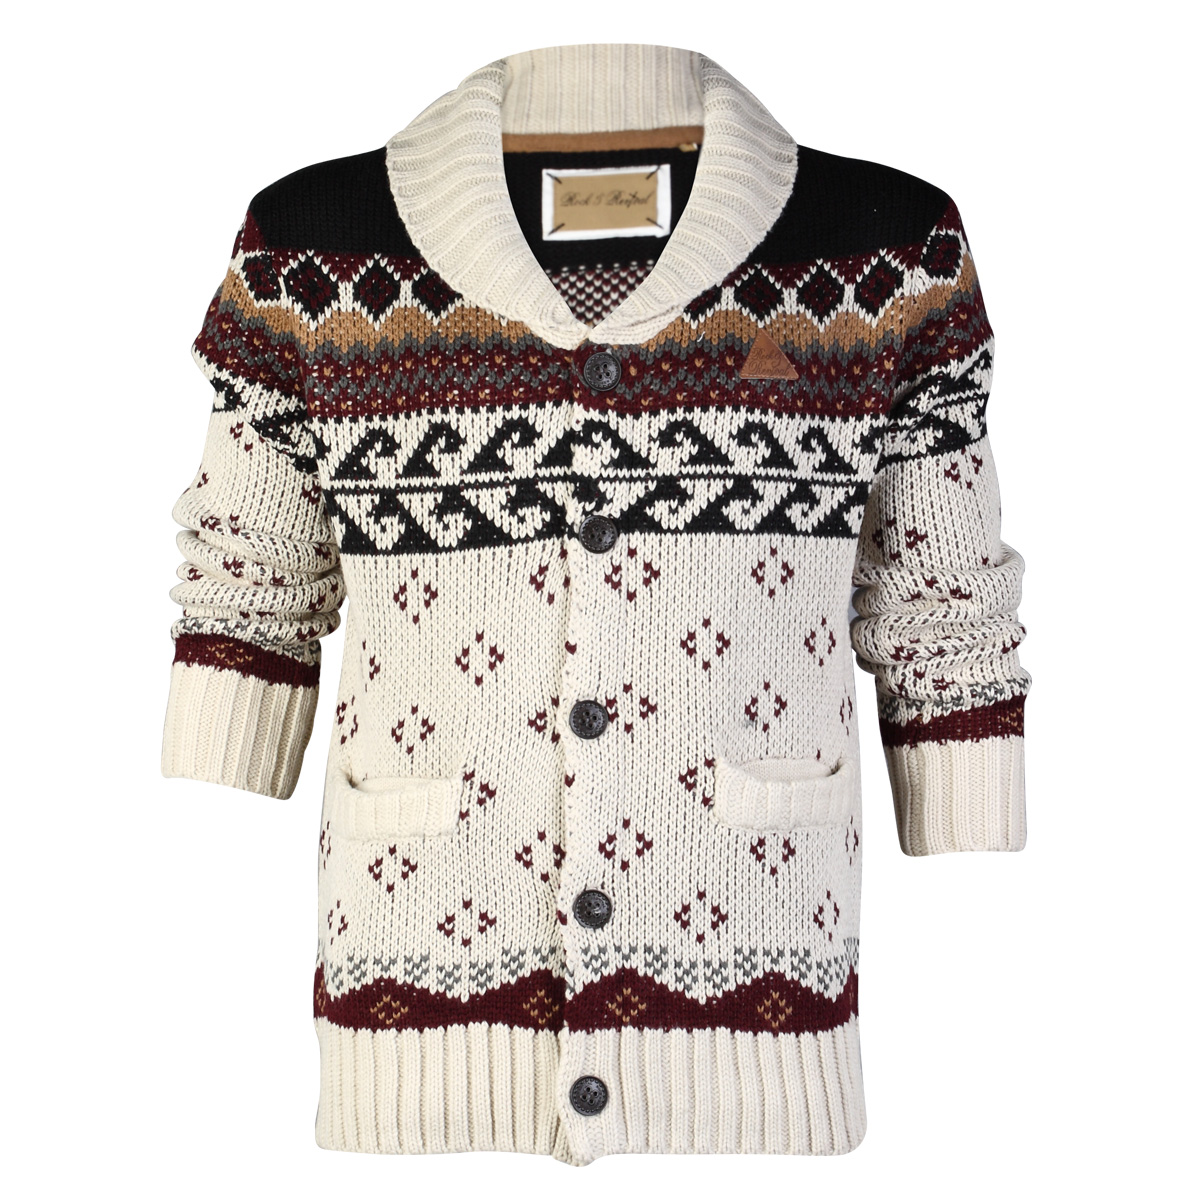 BB MENS ROCK & REVIVAL CHUNKY KNITTED CARDIGAN WINTER LONG SLEEVE ...